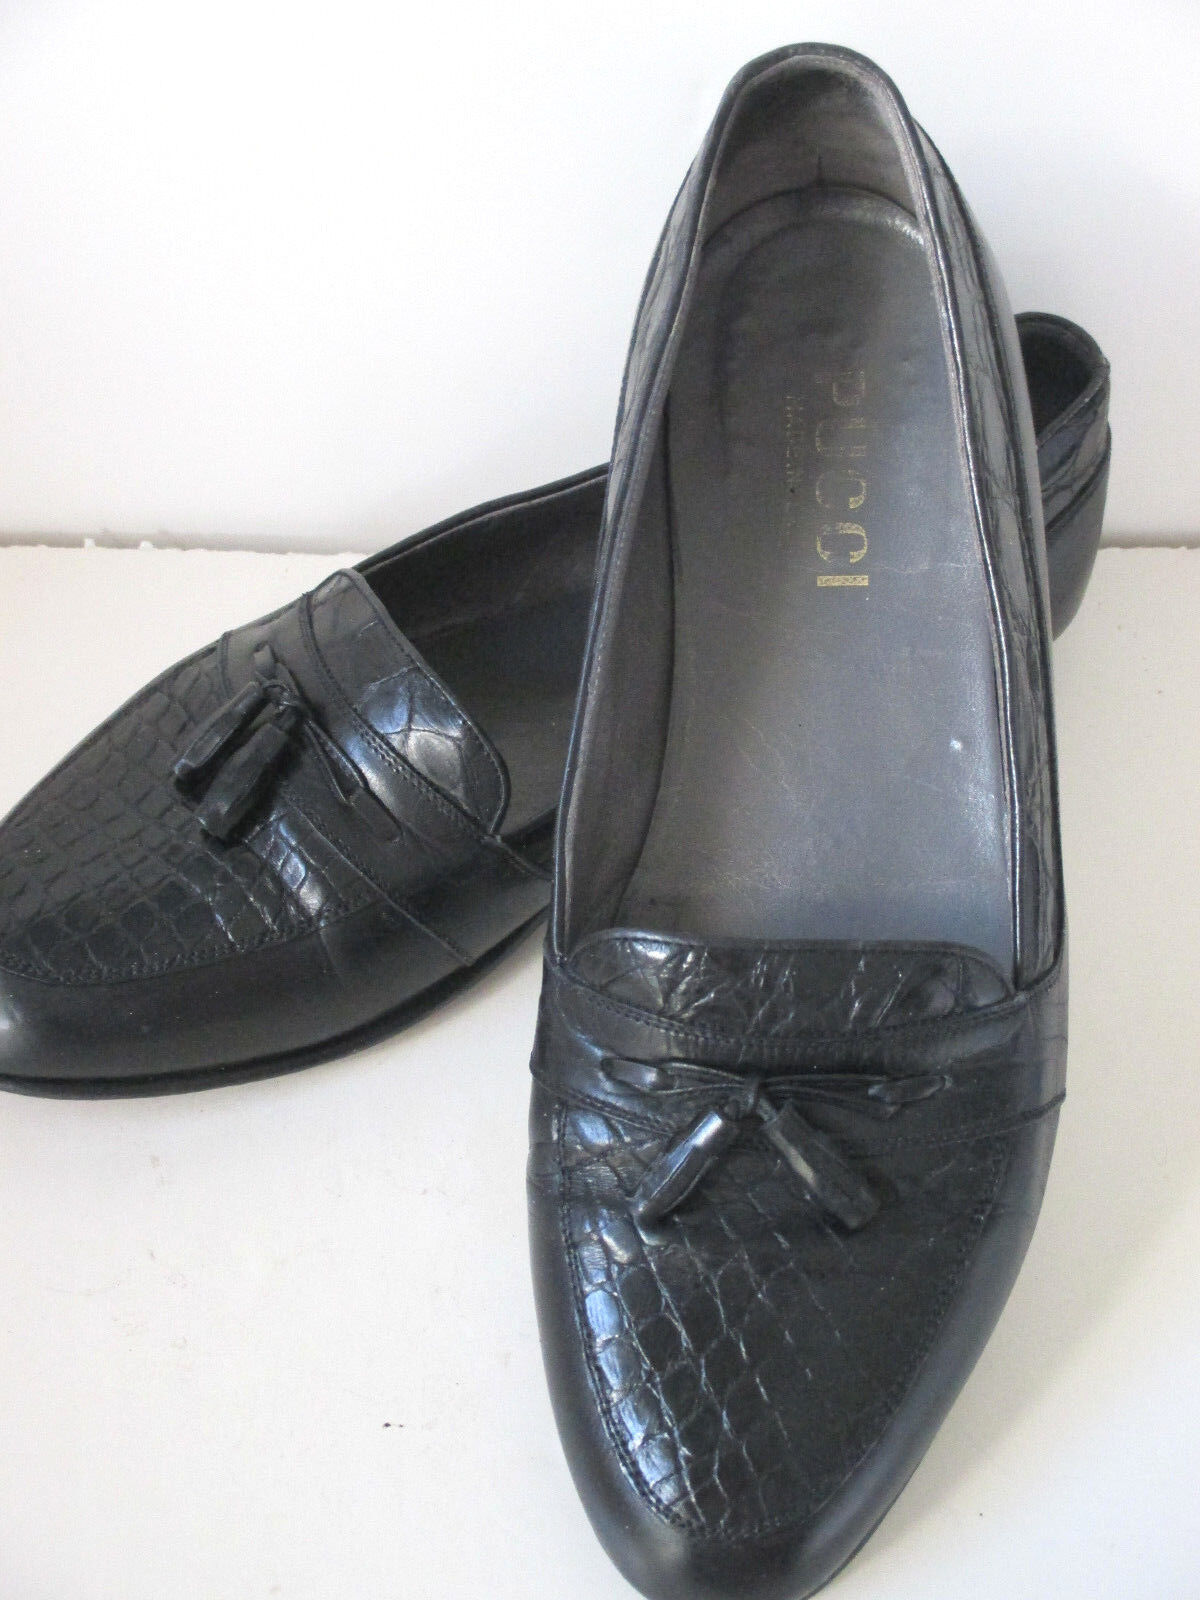 Pucci Men's Shoes Loafer 10.5M Black Leather Faux Alligator